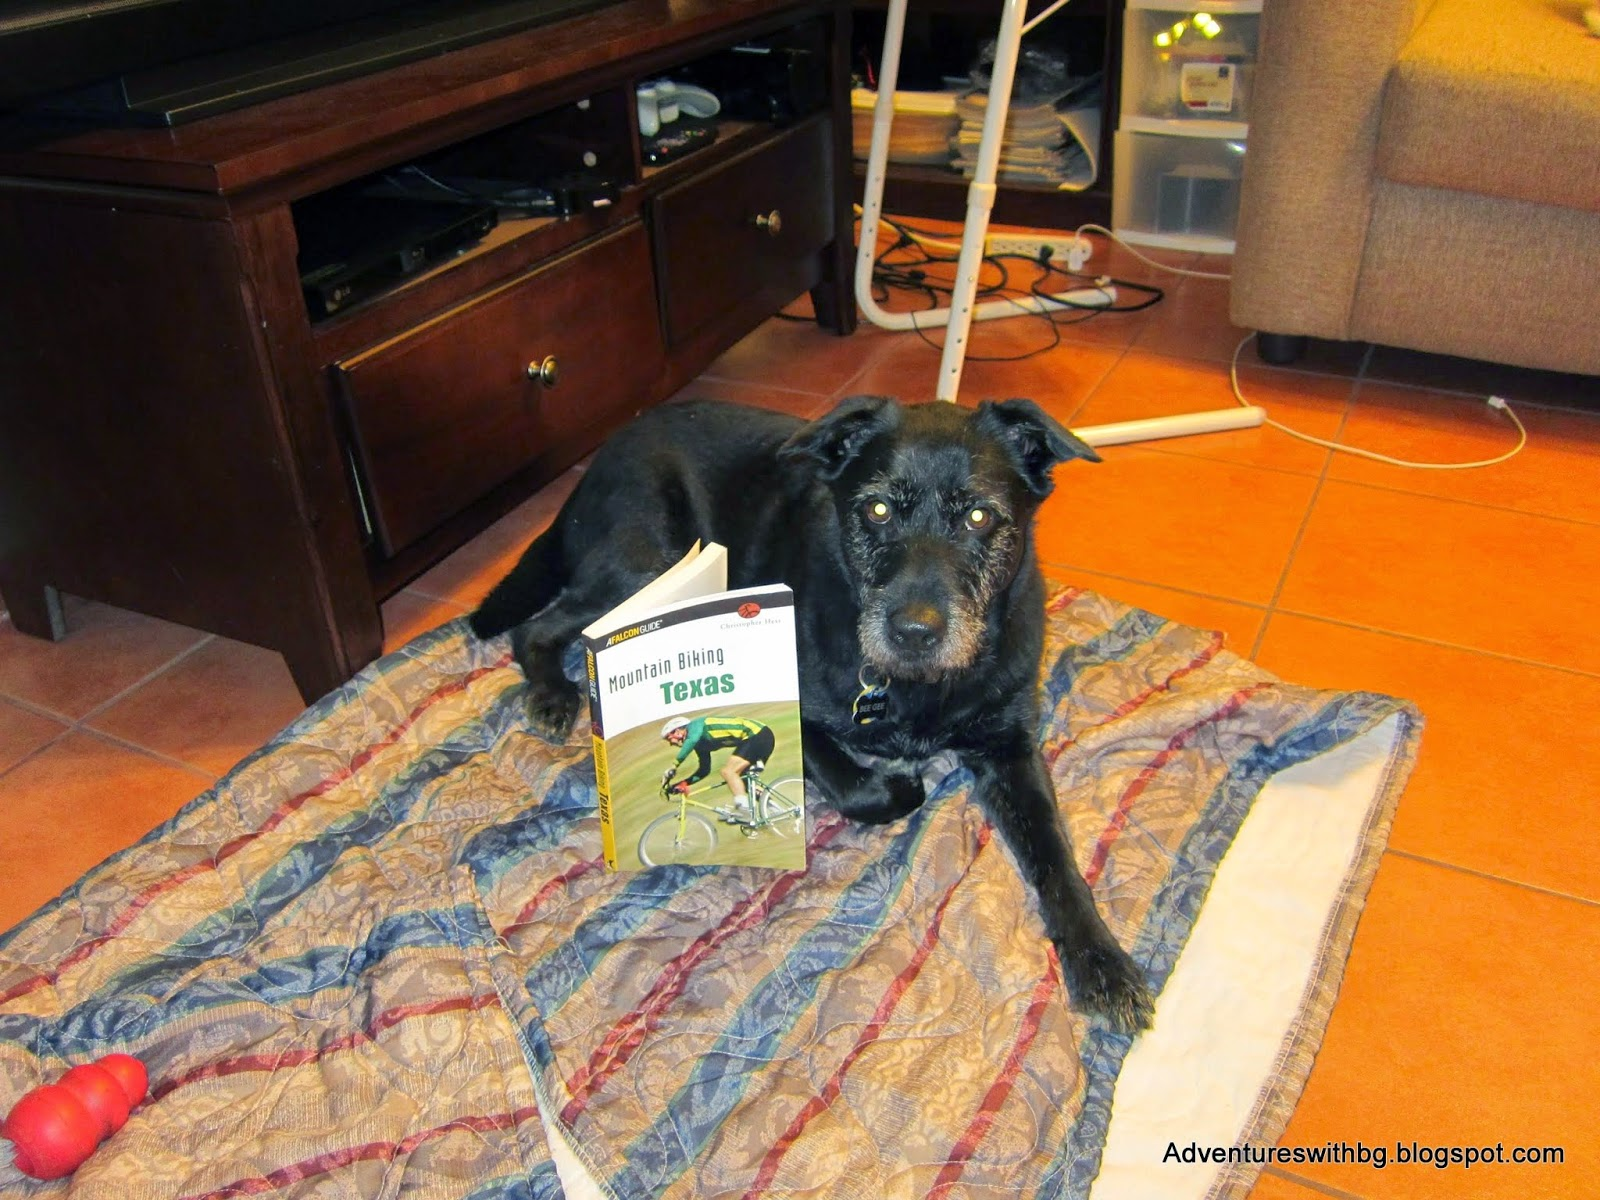 BeeGee the dog reading the reviewed book